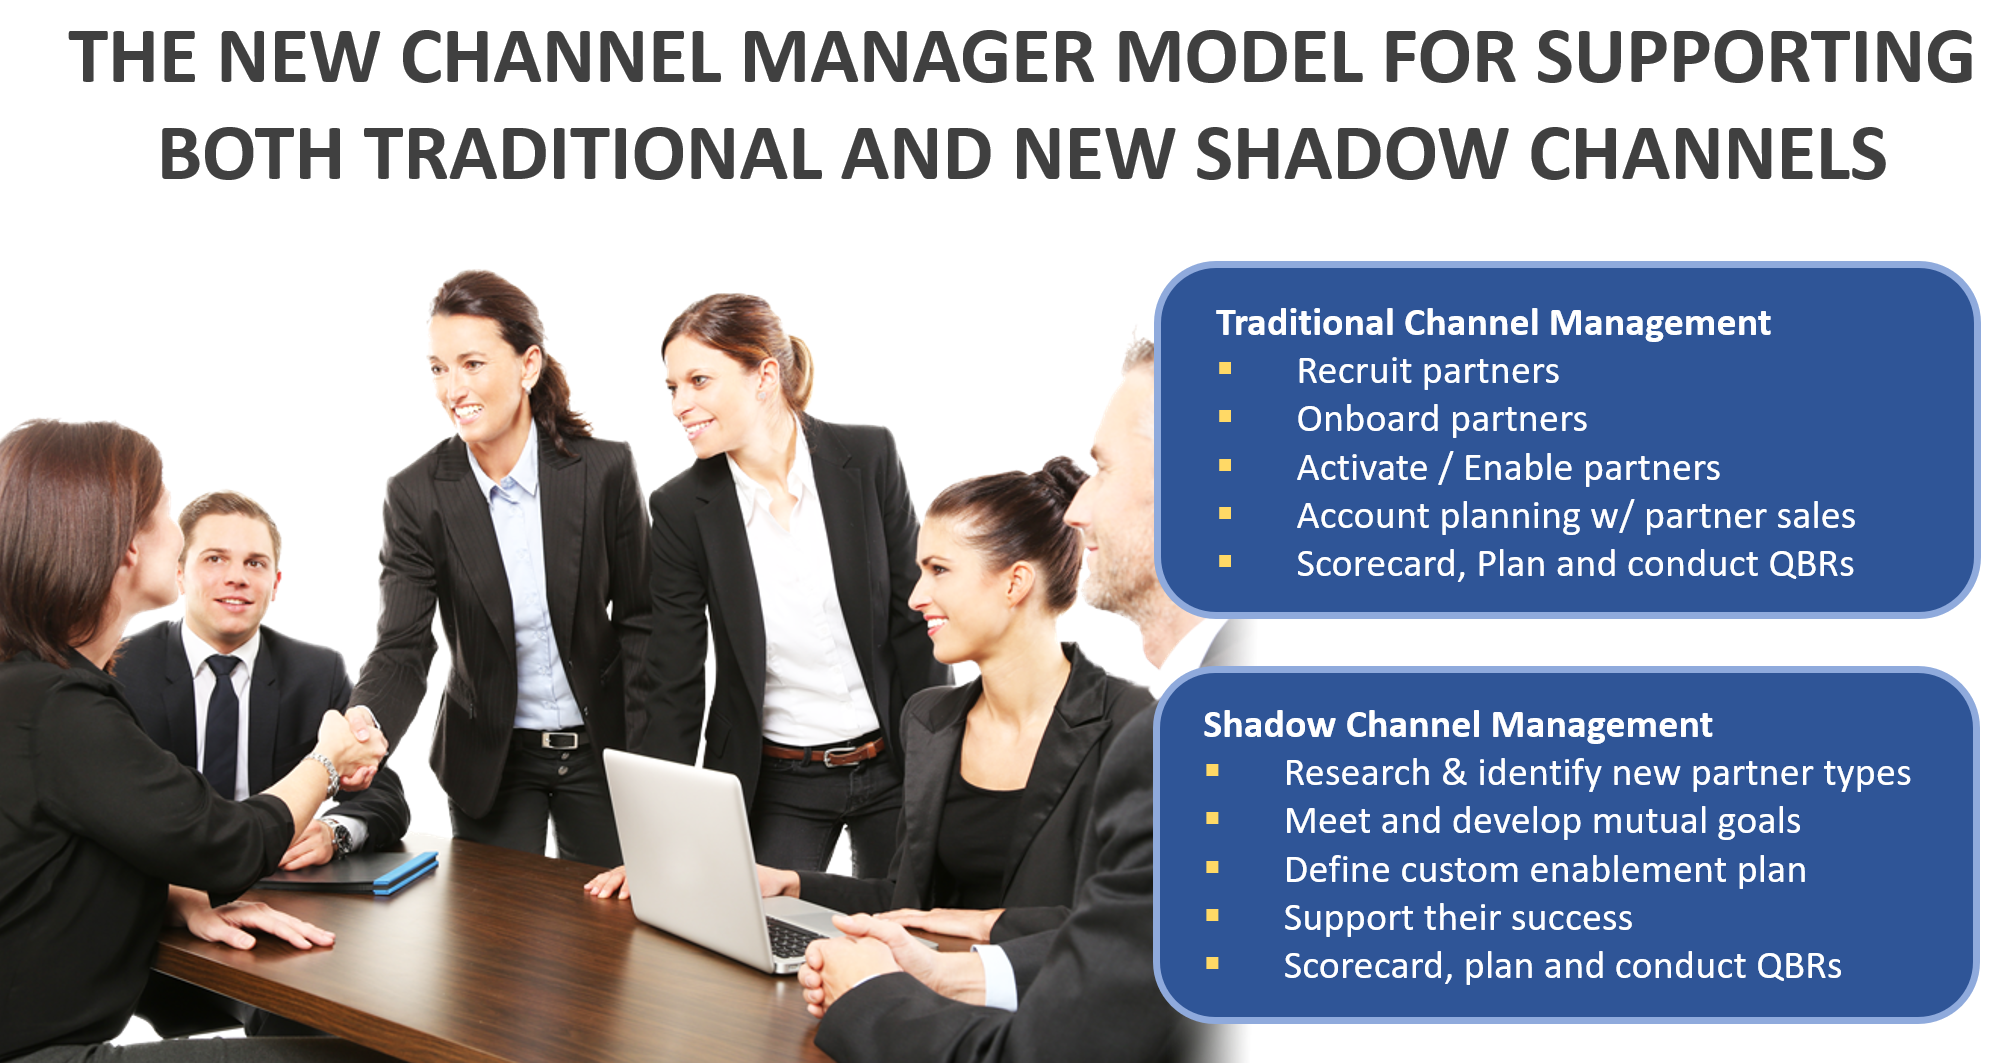 Channel Manager Model